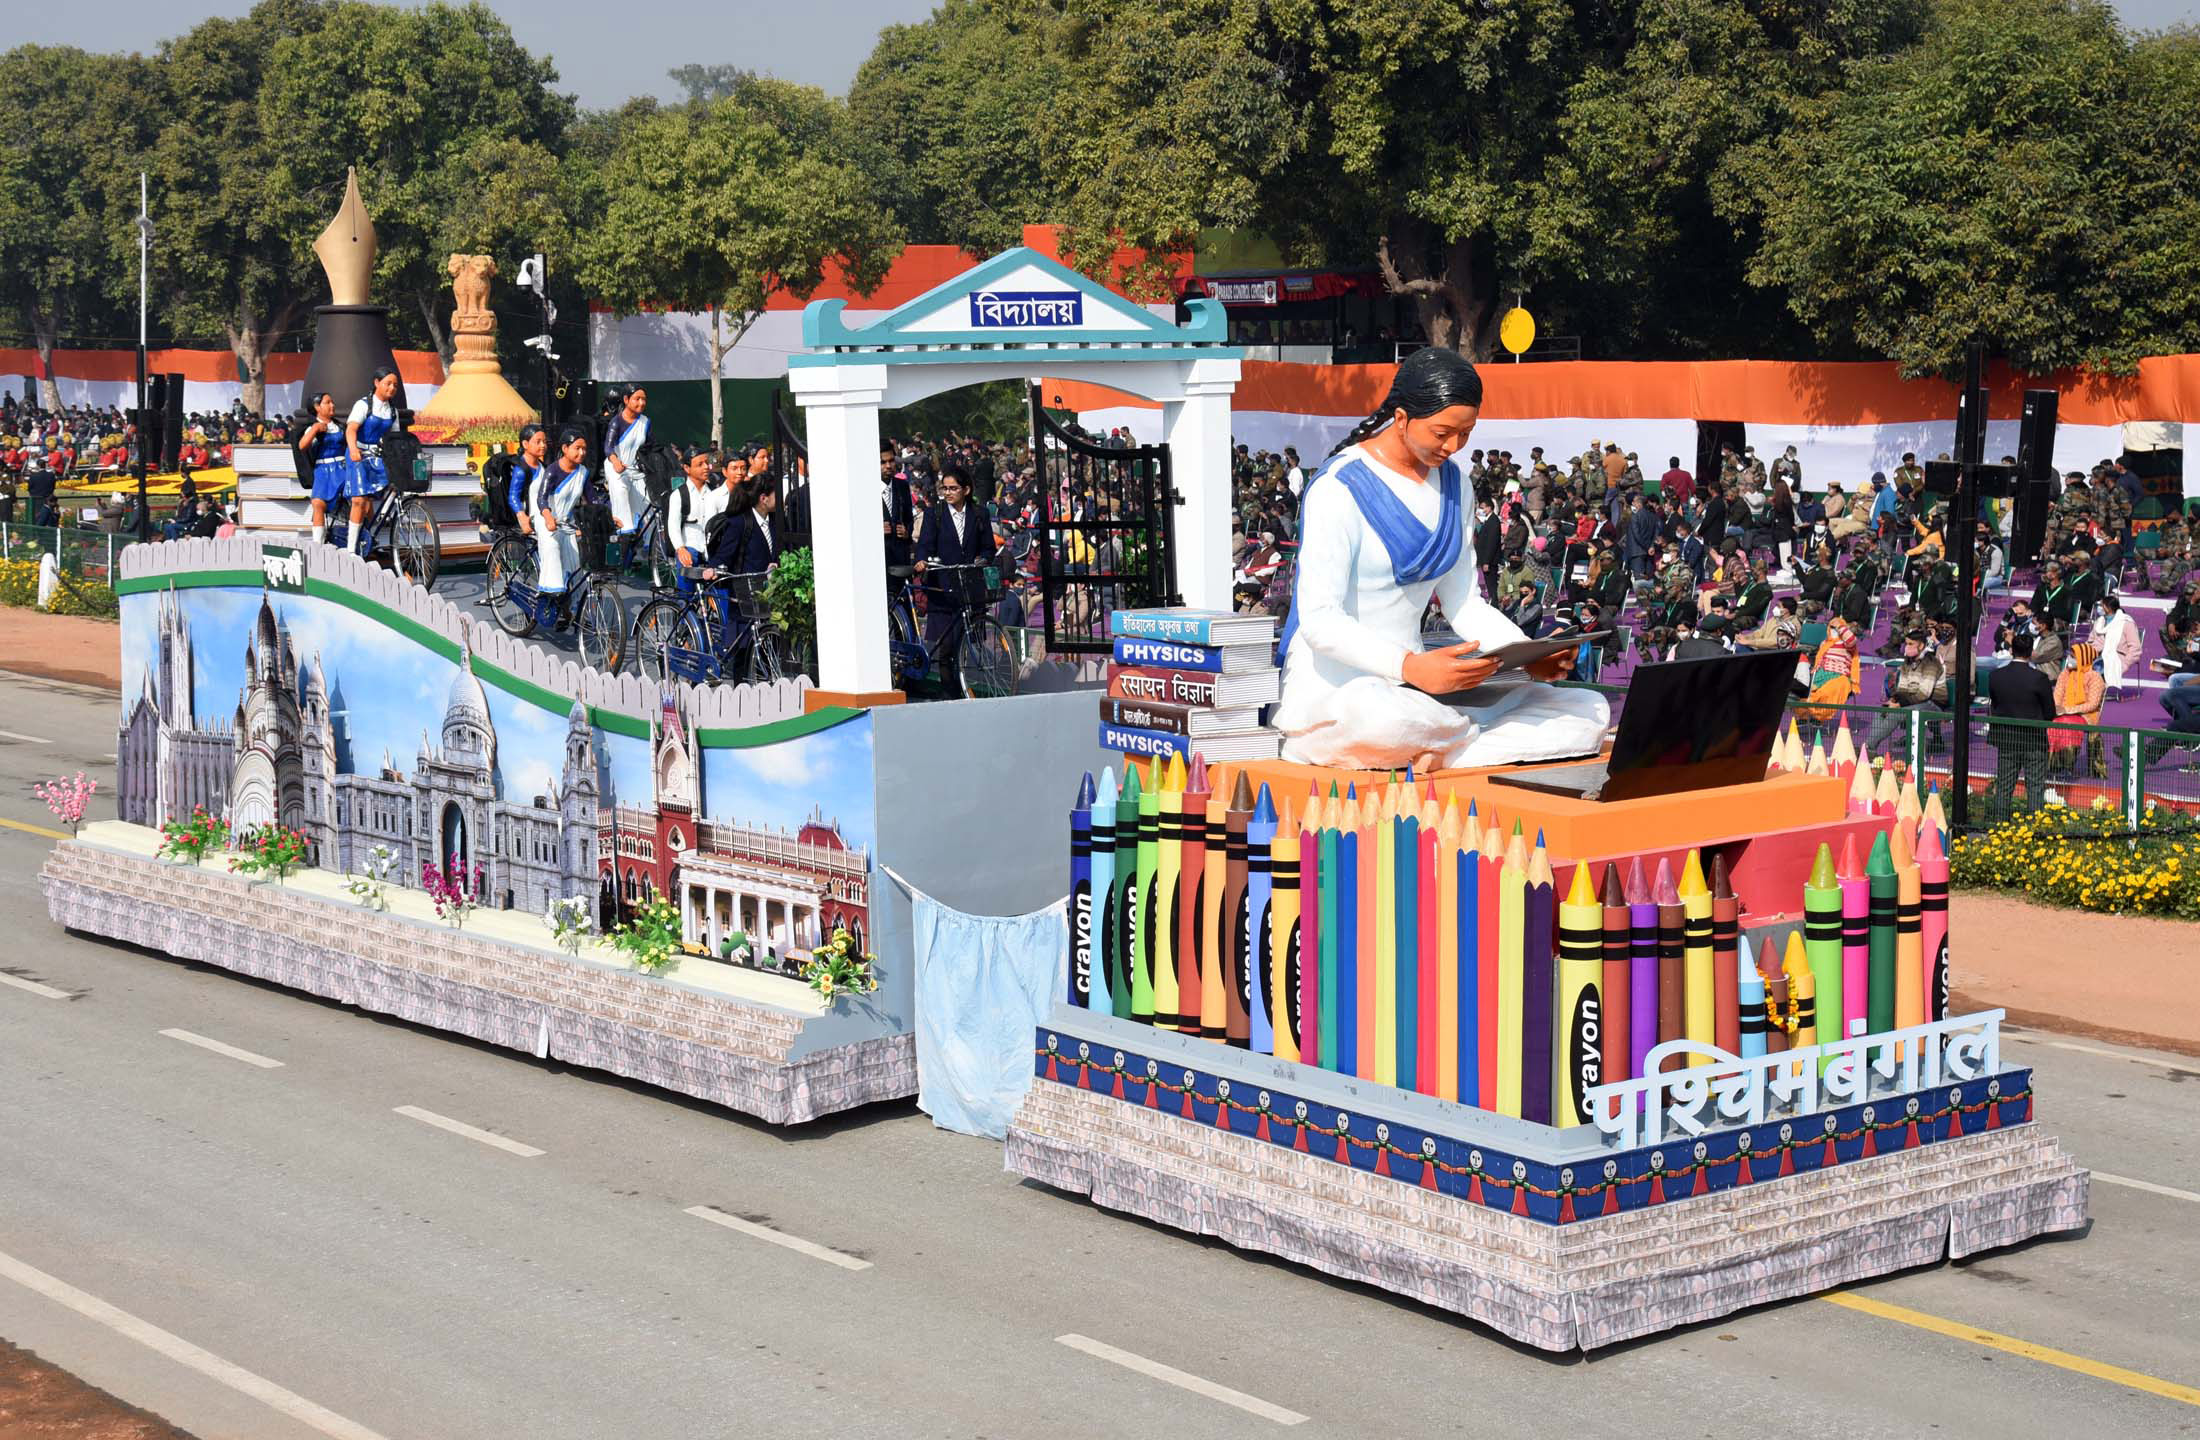 The Tableau of West Bengal passes through the Rajpath at the 72nd Republic Day Celebrations, in New Delhi on January 26, 2021.